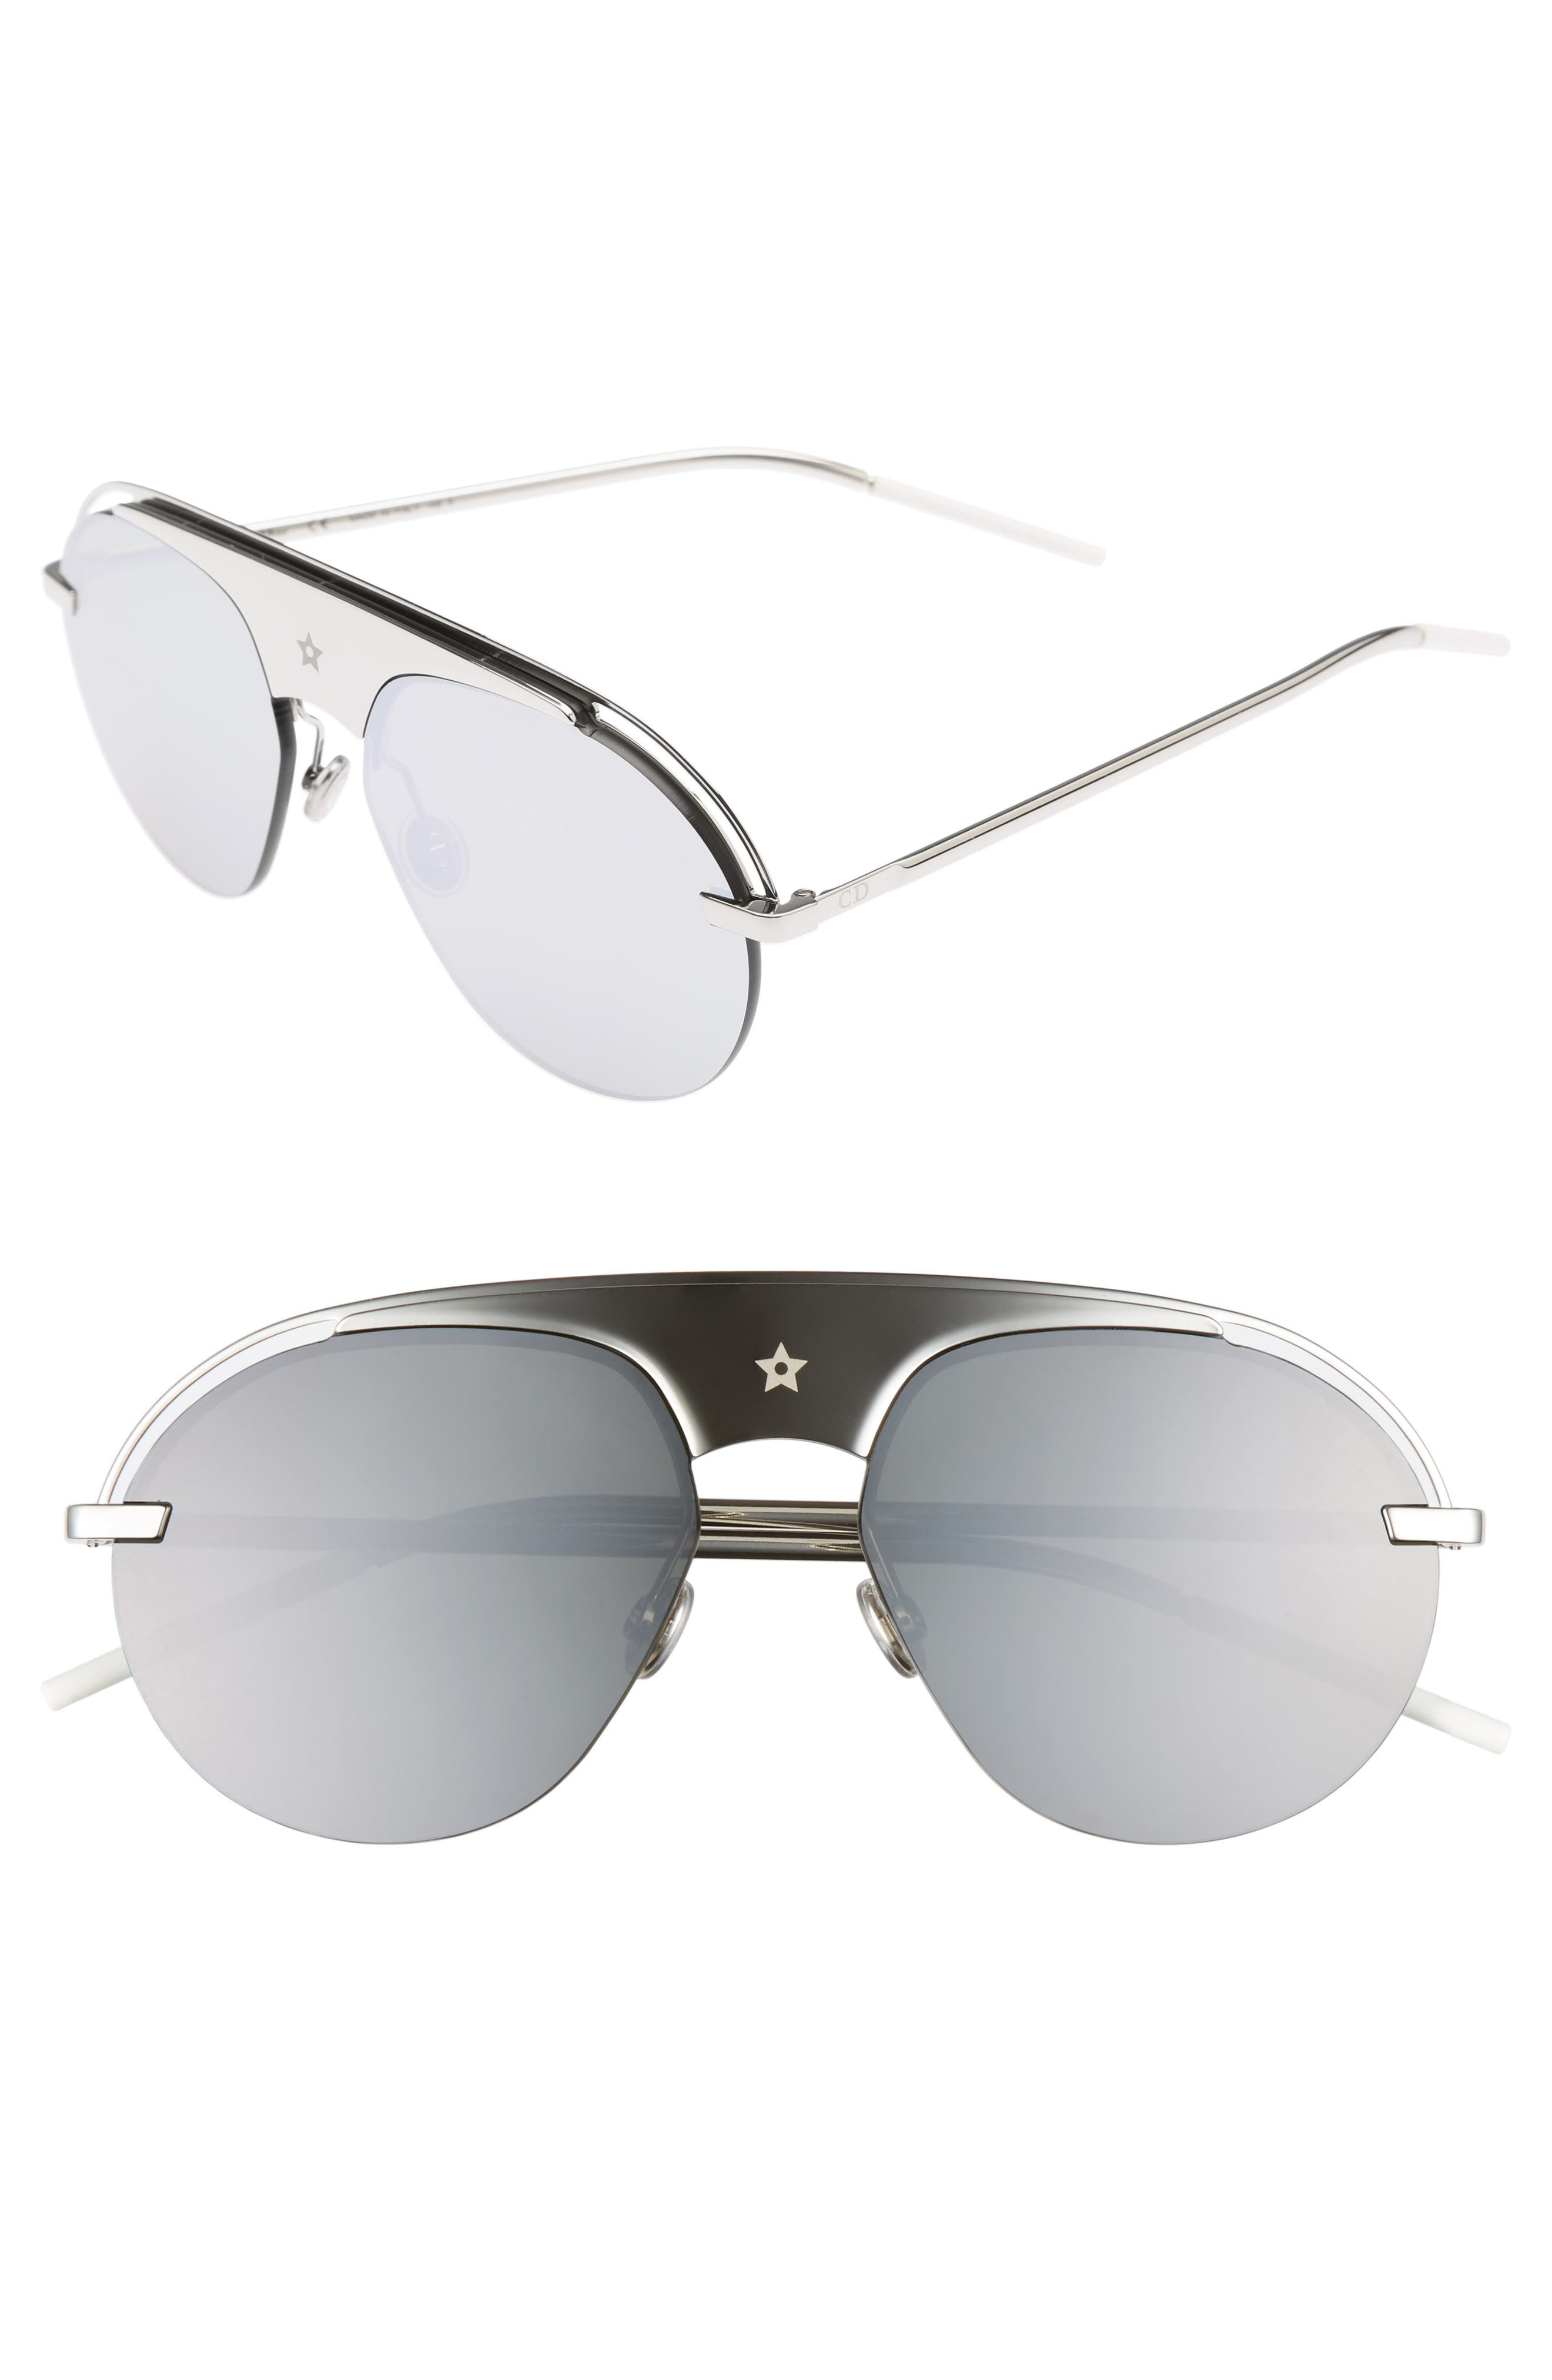 Evolution 2 60mm Aviator Sunglasses,                         Main,                         color, Palladium